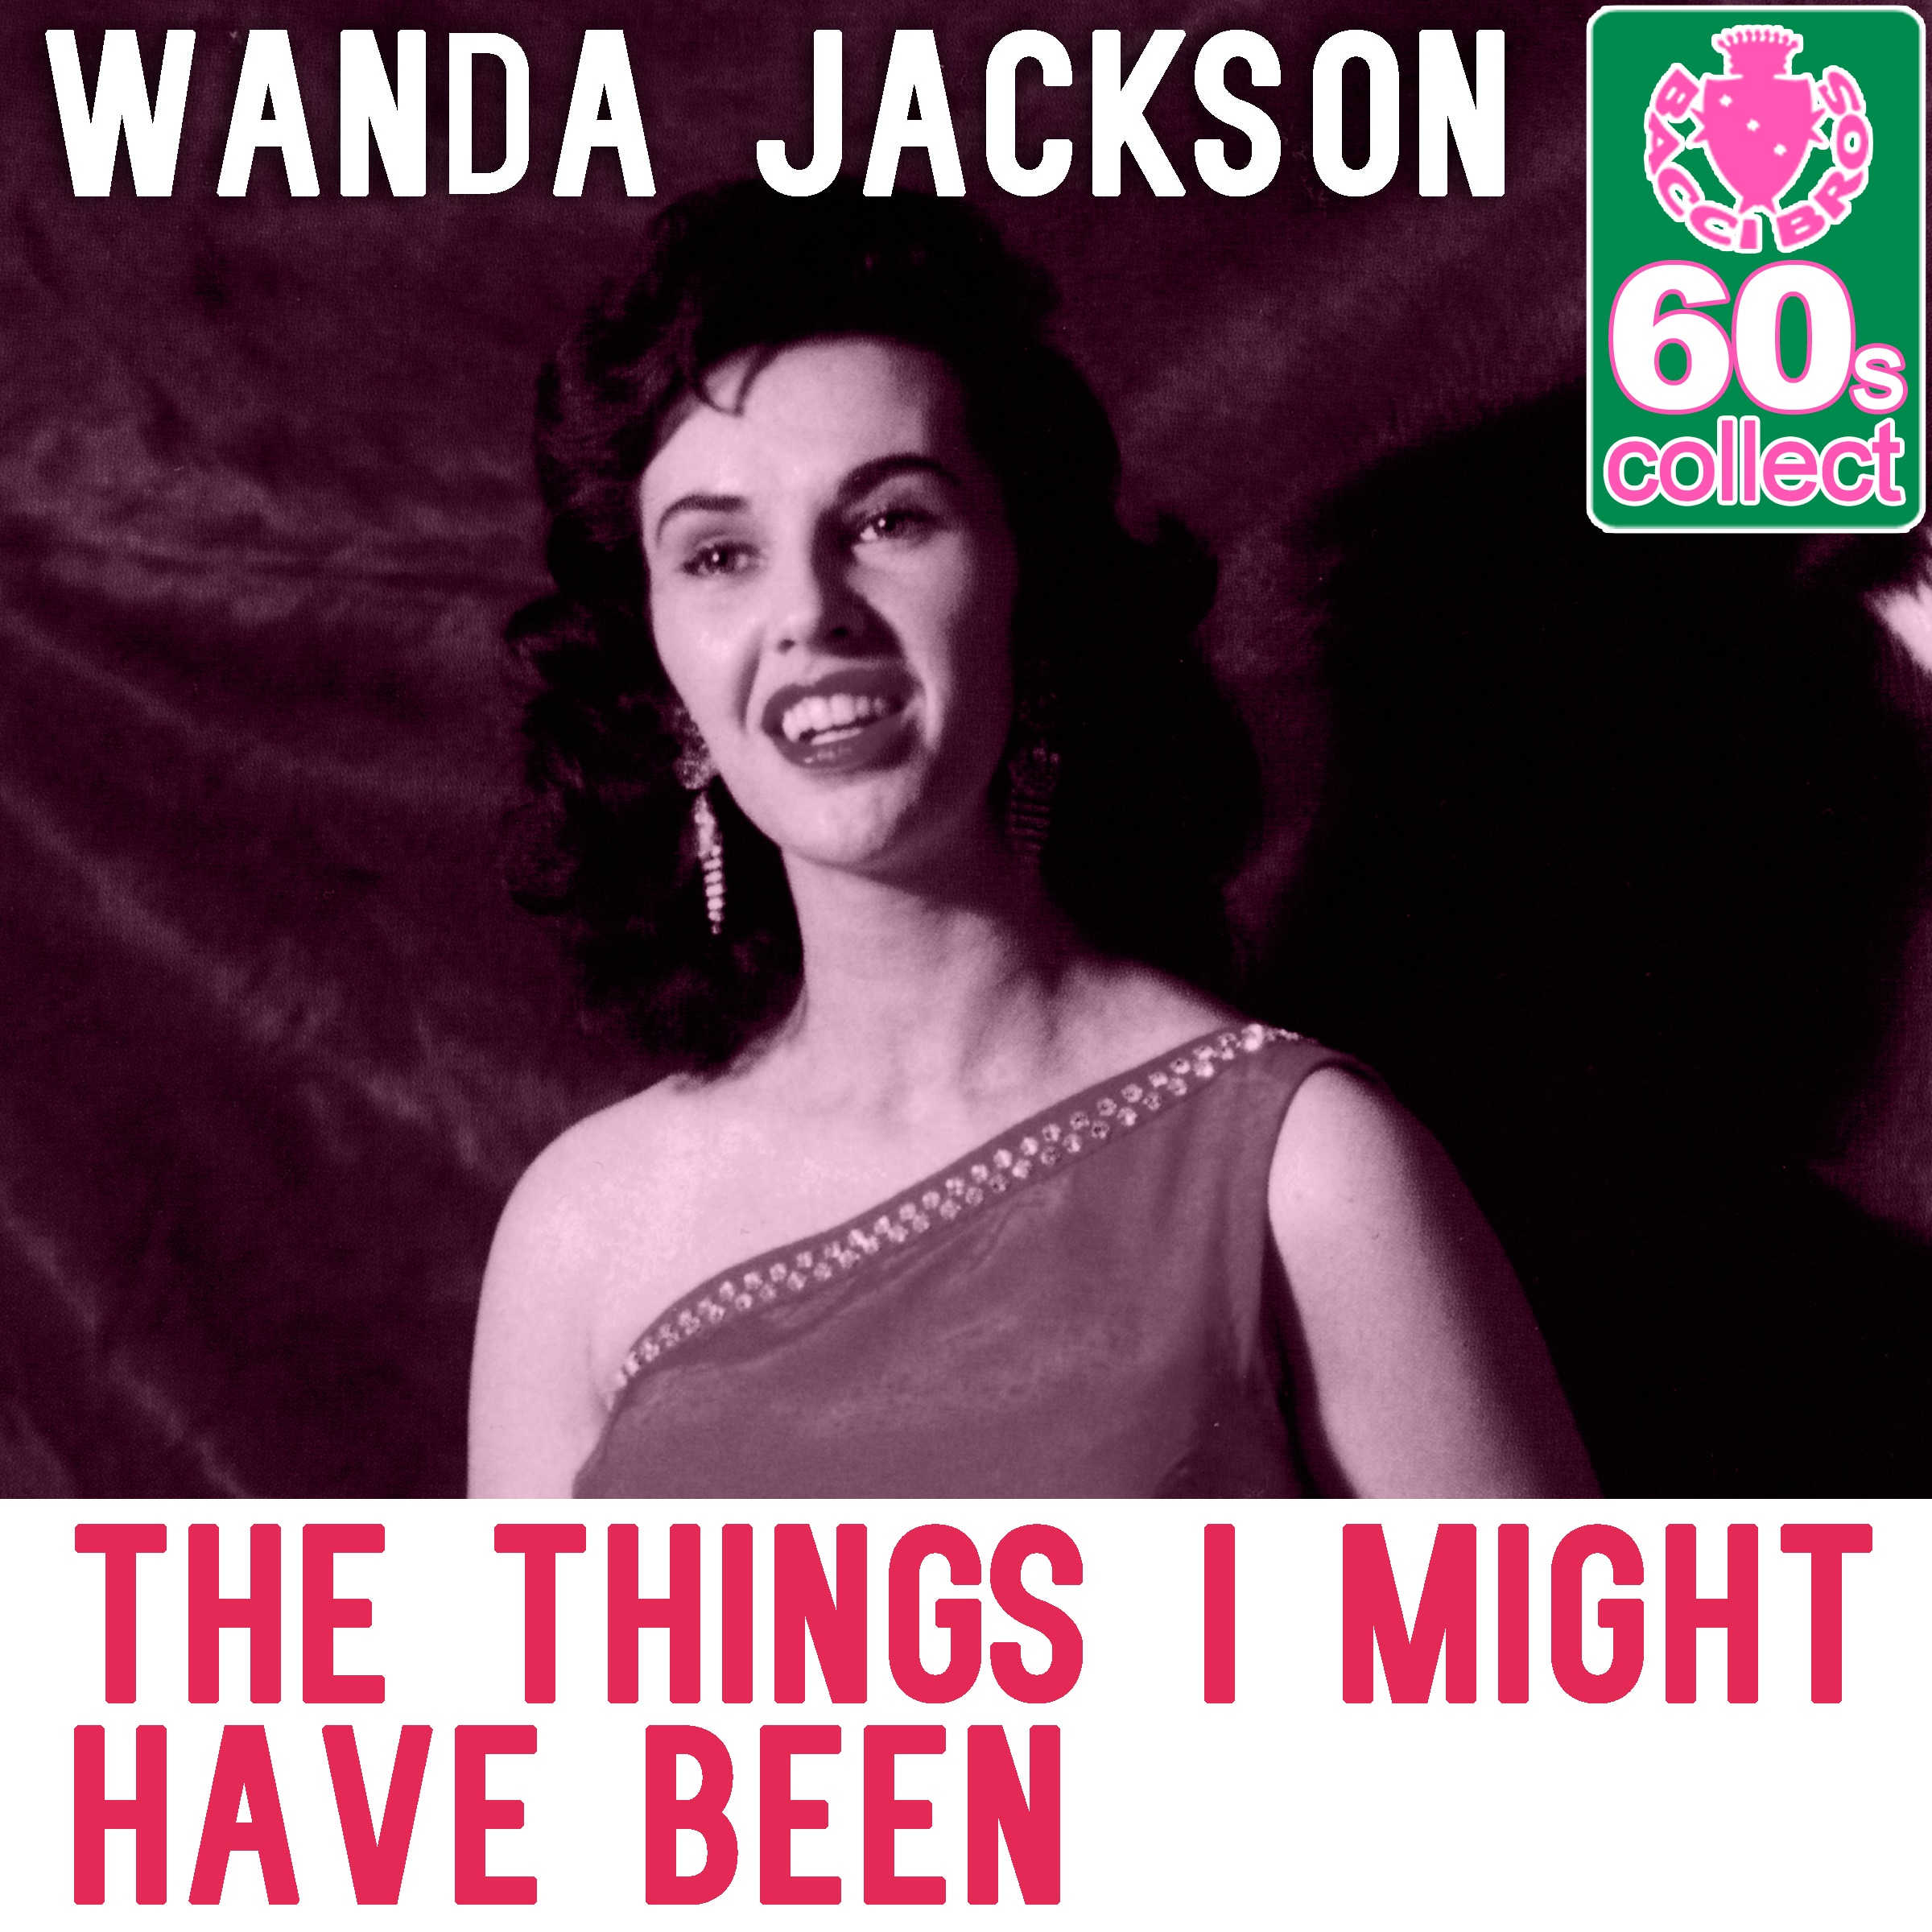 The Things I Might Have Been (Remastered) - Single